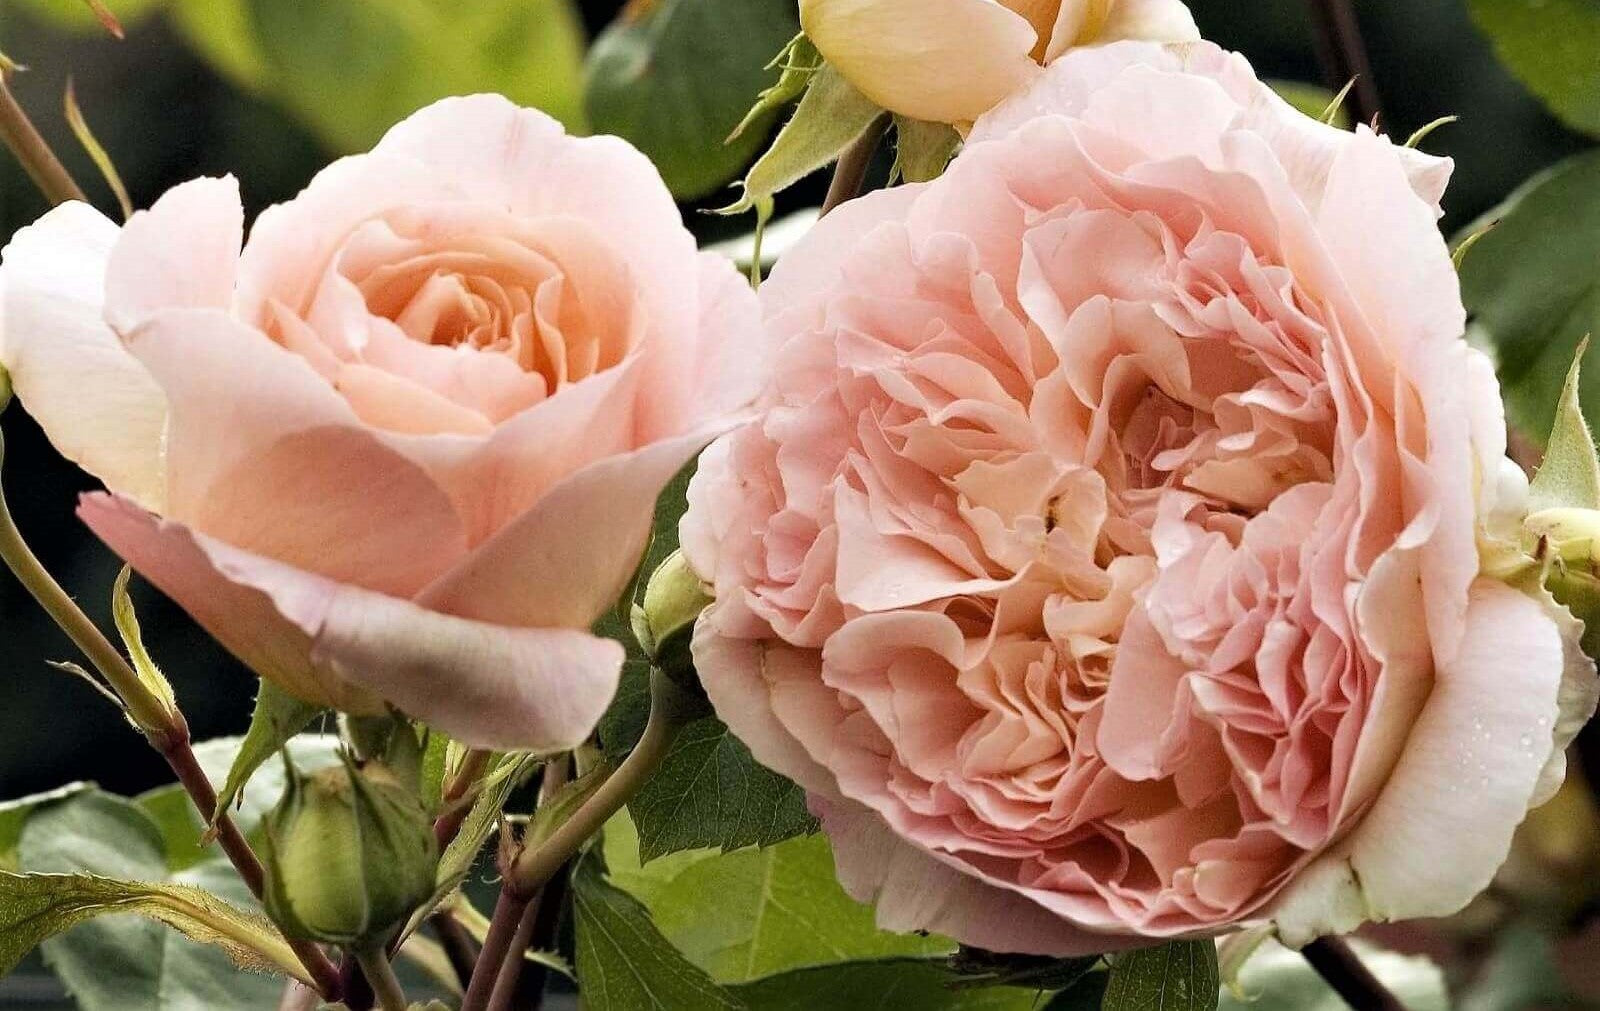 Rose bushes for Czech Republic. We deliver bare root and potted garden roses all over Czech Republic.